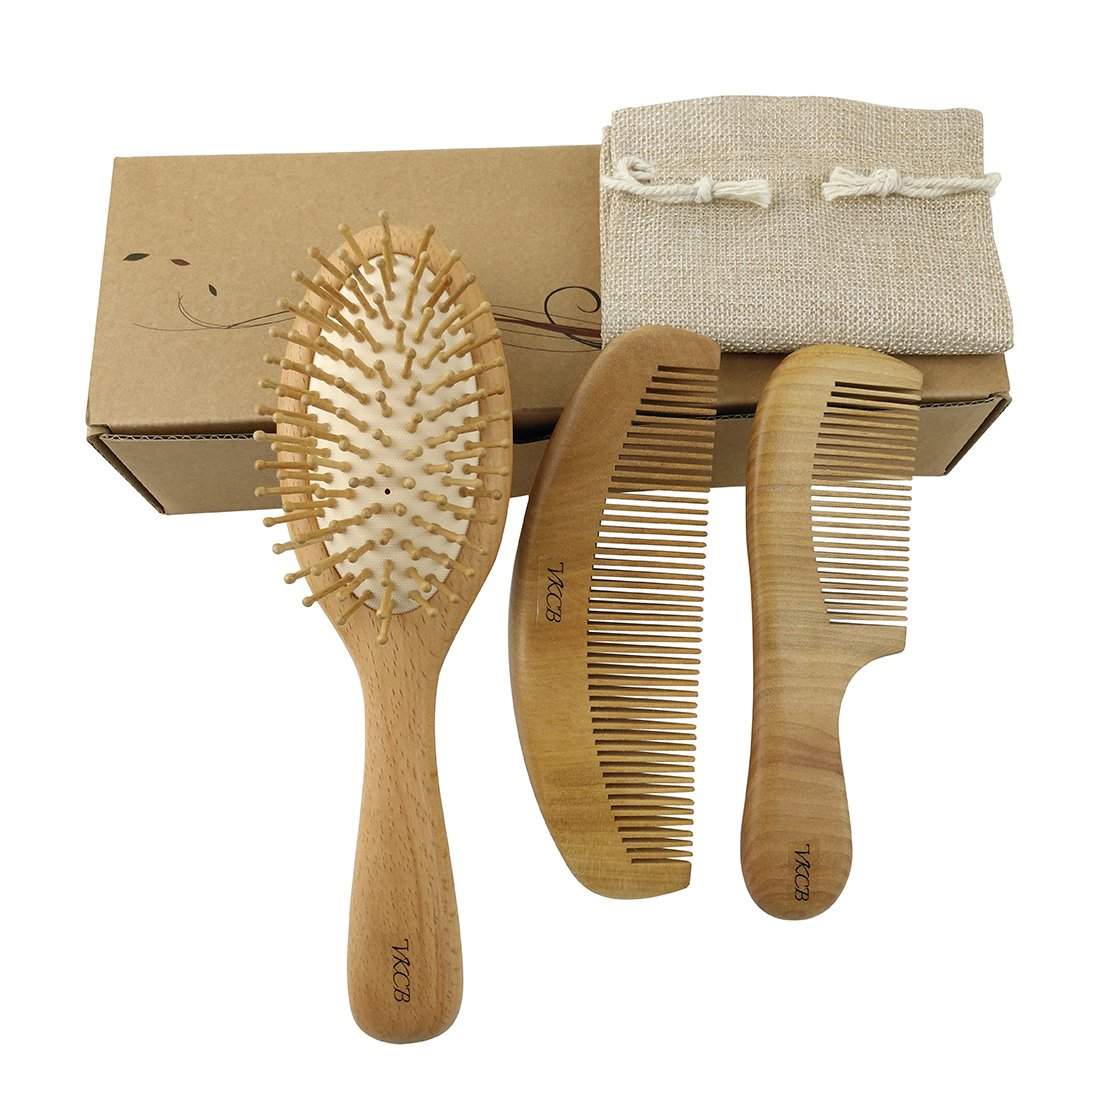 Natural Wood Hair Brush with Wooden Bristles Massage Scalp Comb and Peach Wood Beard Comb for Men and Women 3 pcs vklw